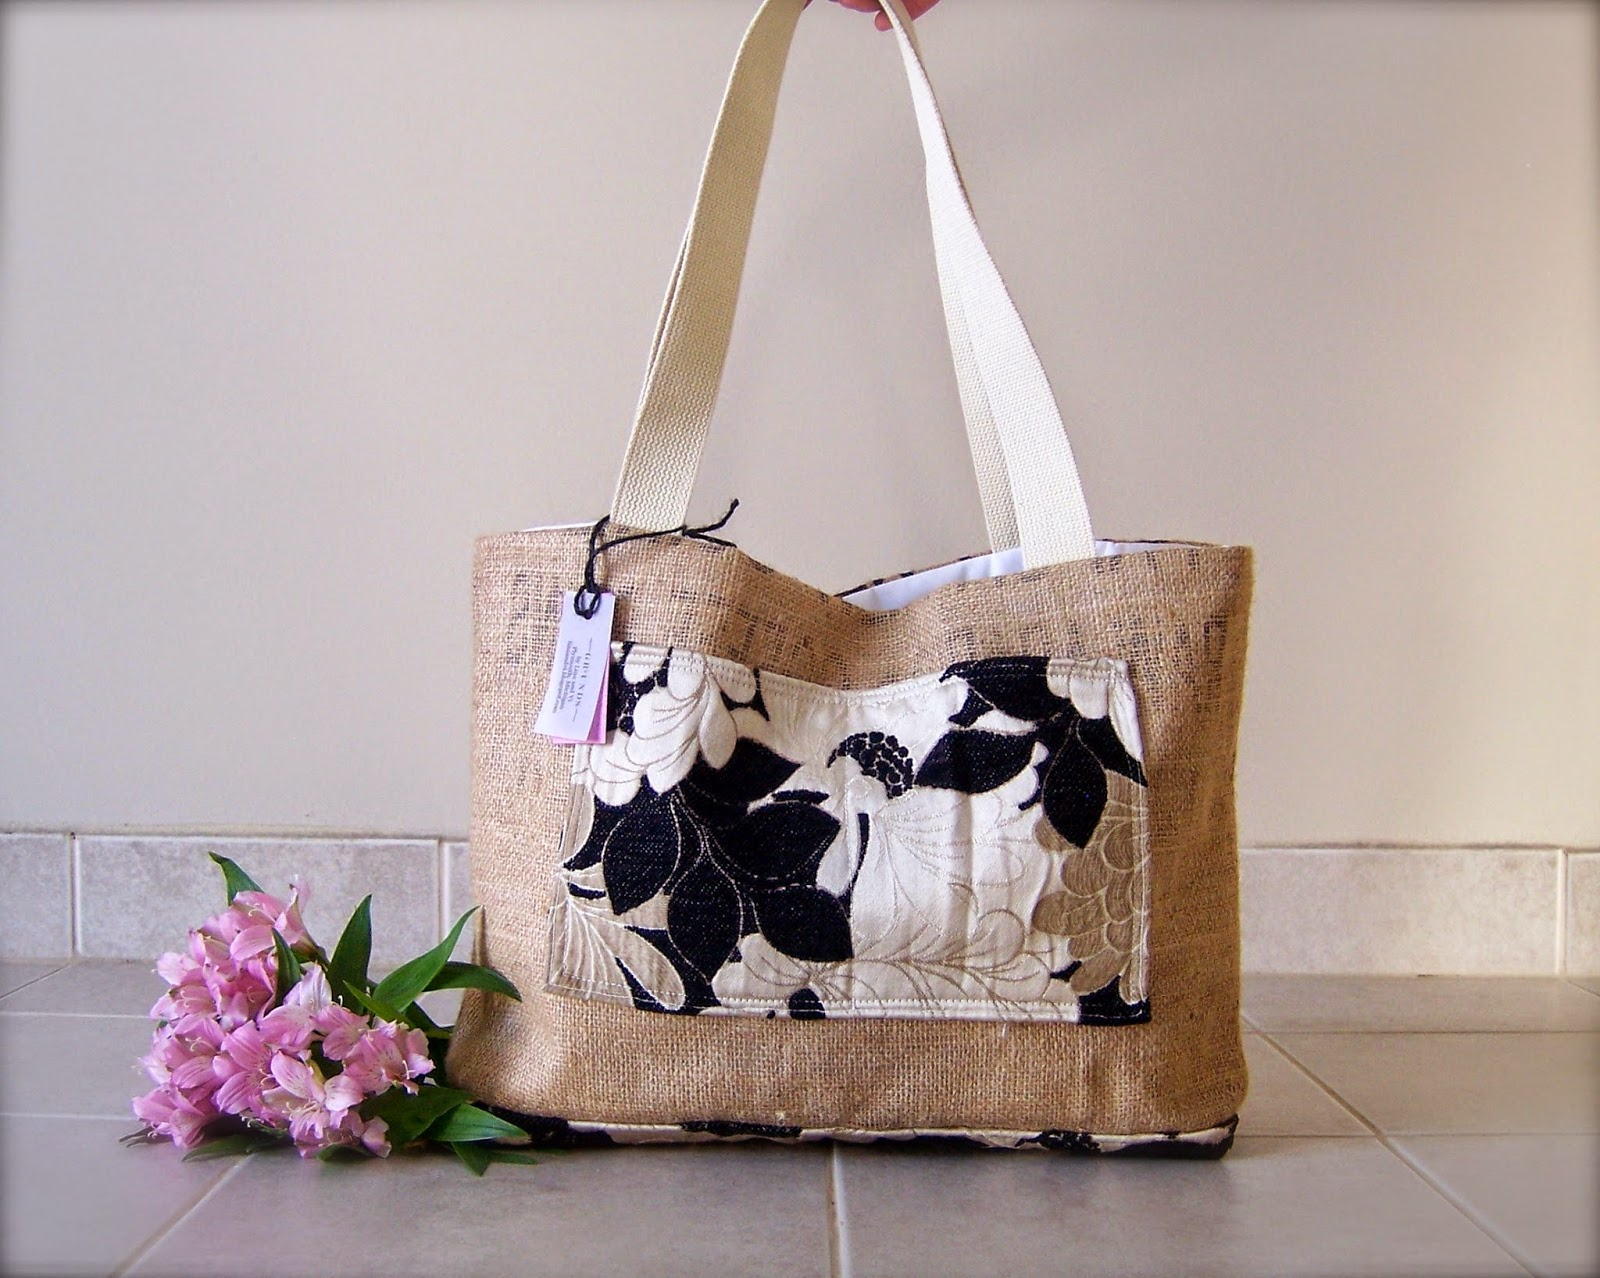 Clean Sound and New burlap tote bag - exterior - linaandvi.blogspot.com